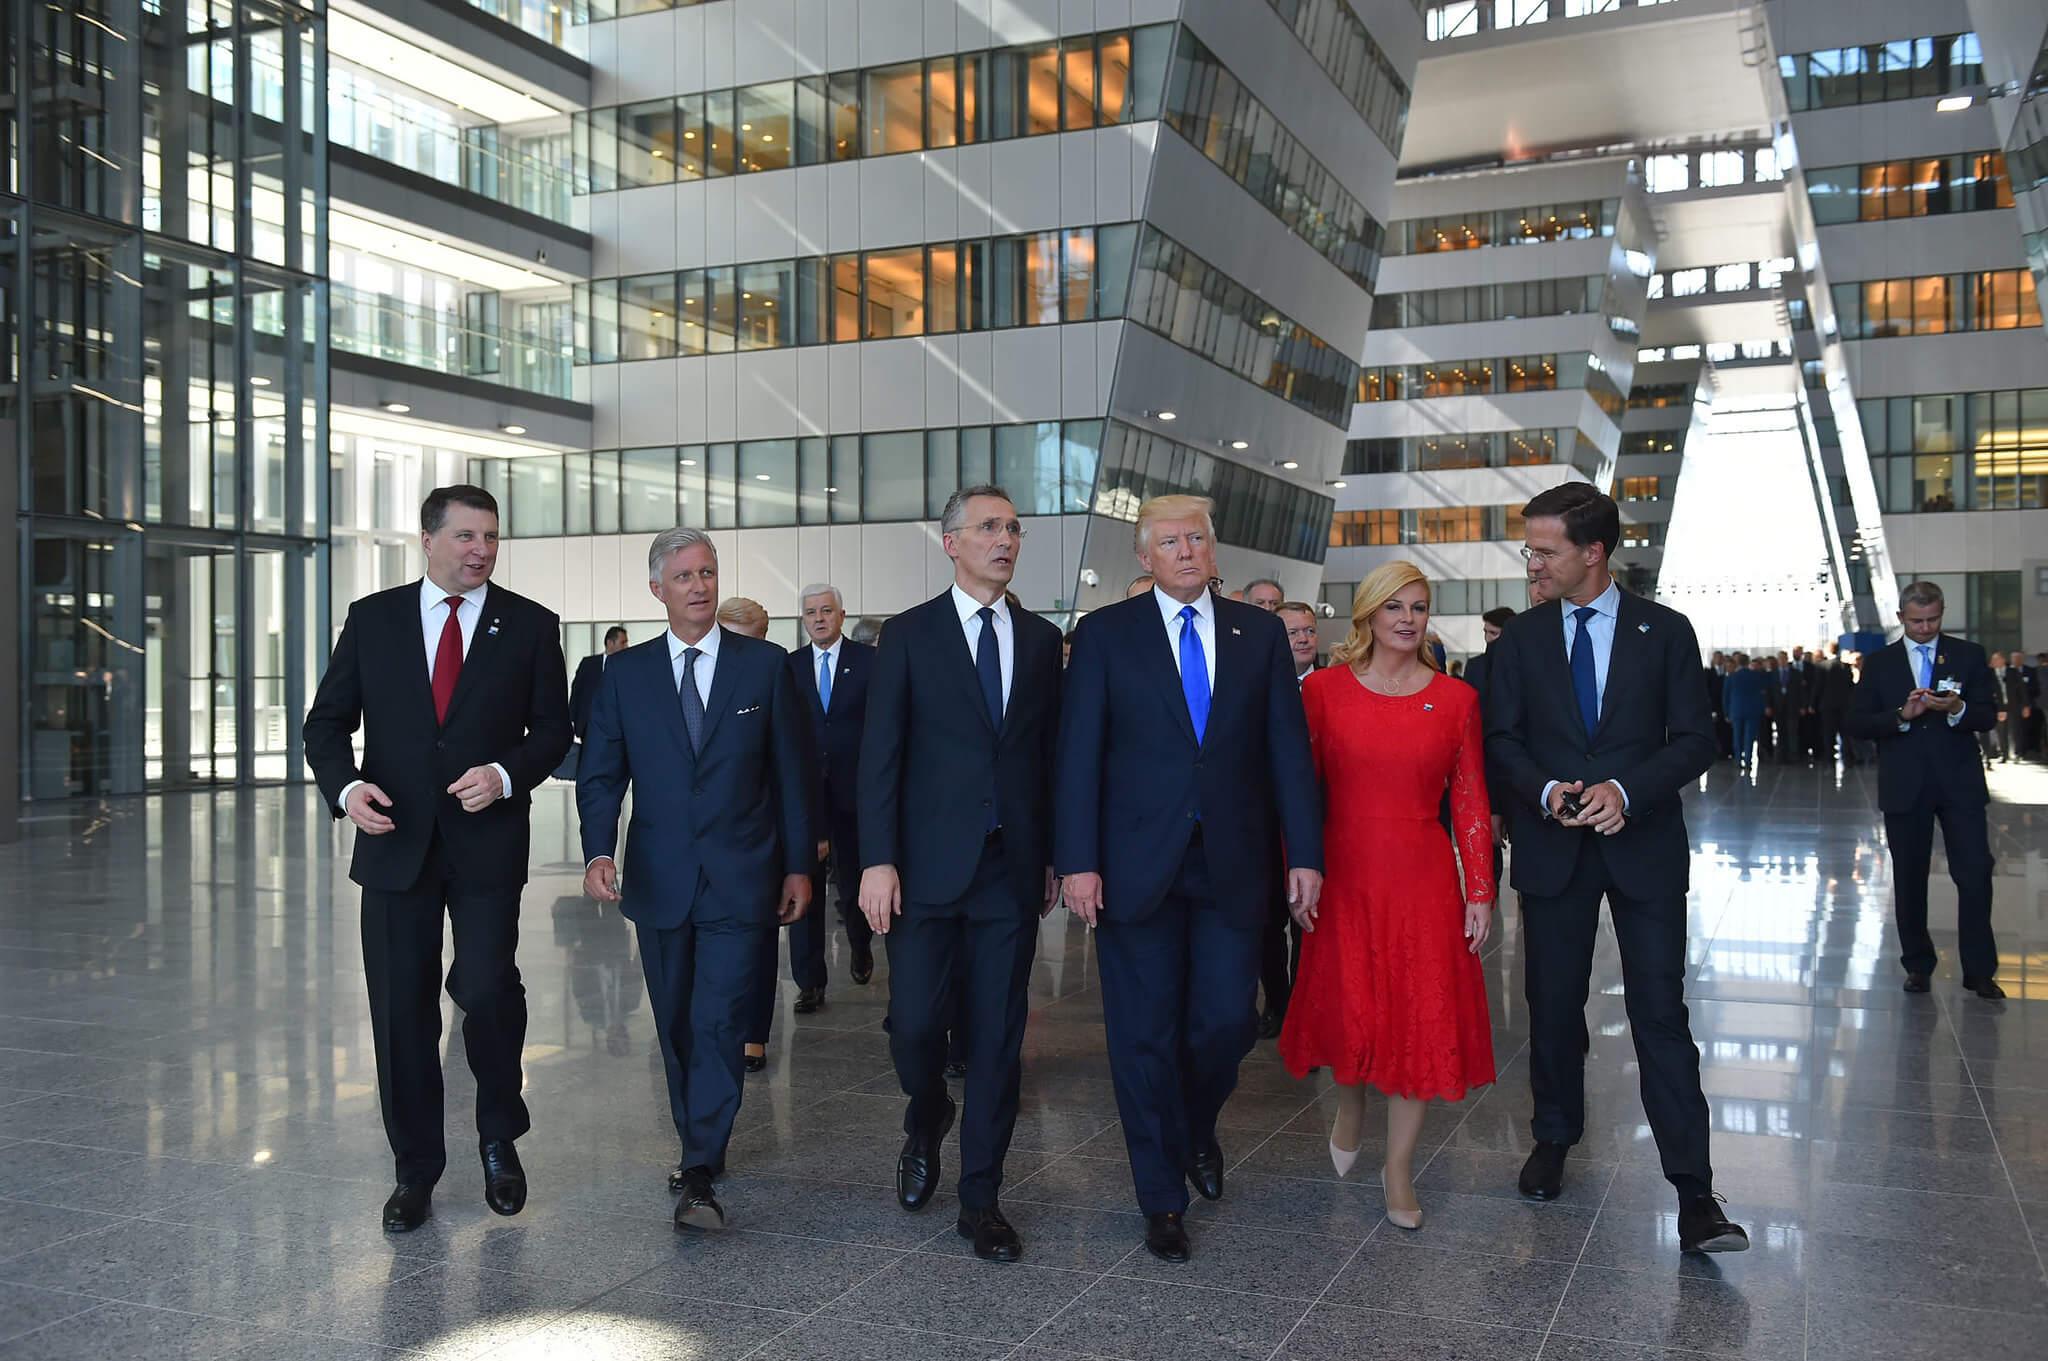 Boxhoorn-foto-Walk-Meeting of NATO Heads of State and Government in Brussels in 2017 with Dutch Prime Minister Mark Rutte on the right. NATO